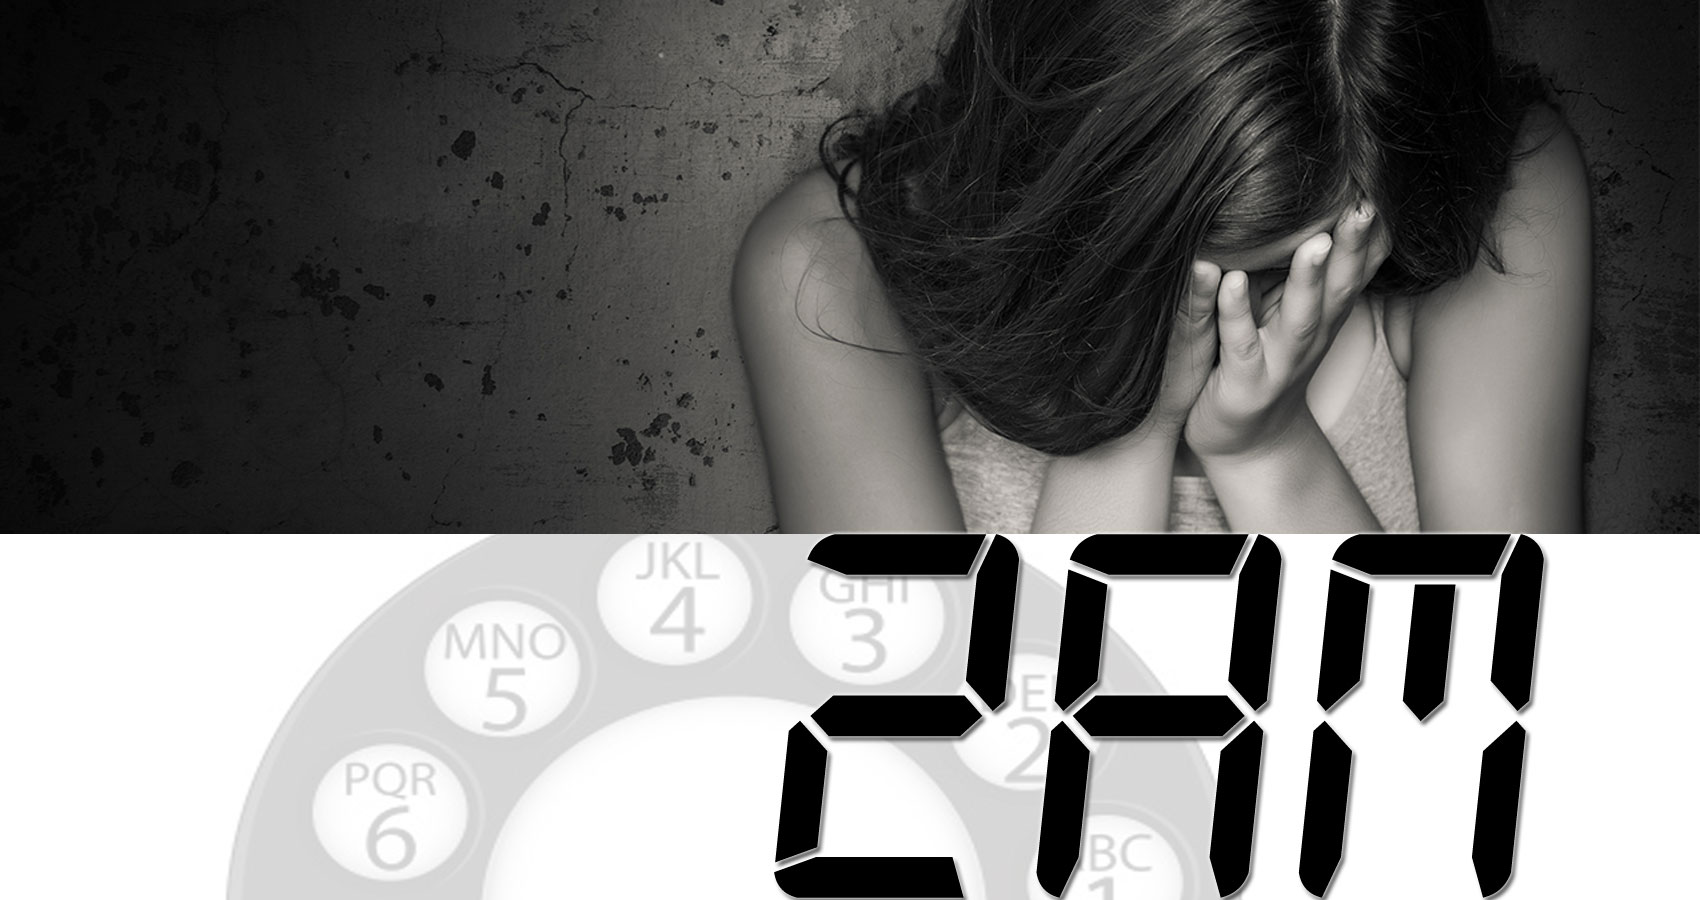 2AM, by Kalina at Spillwords.com